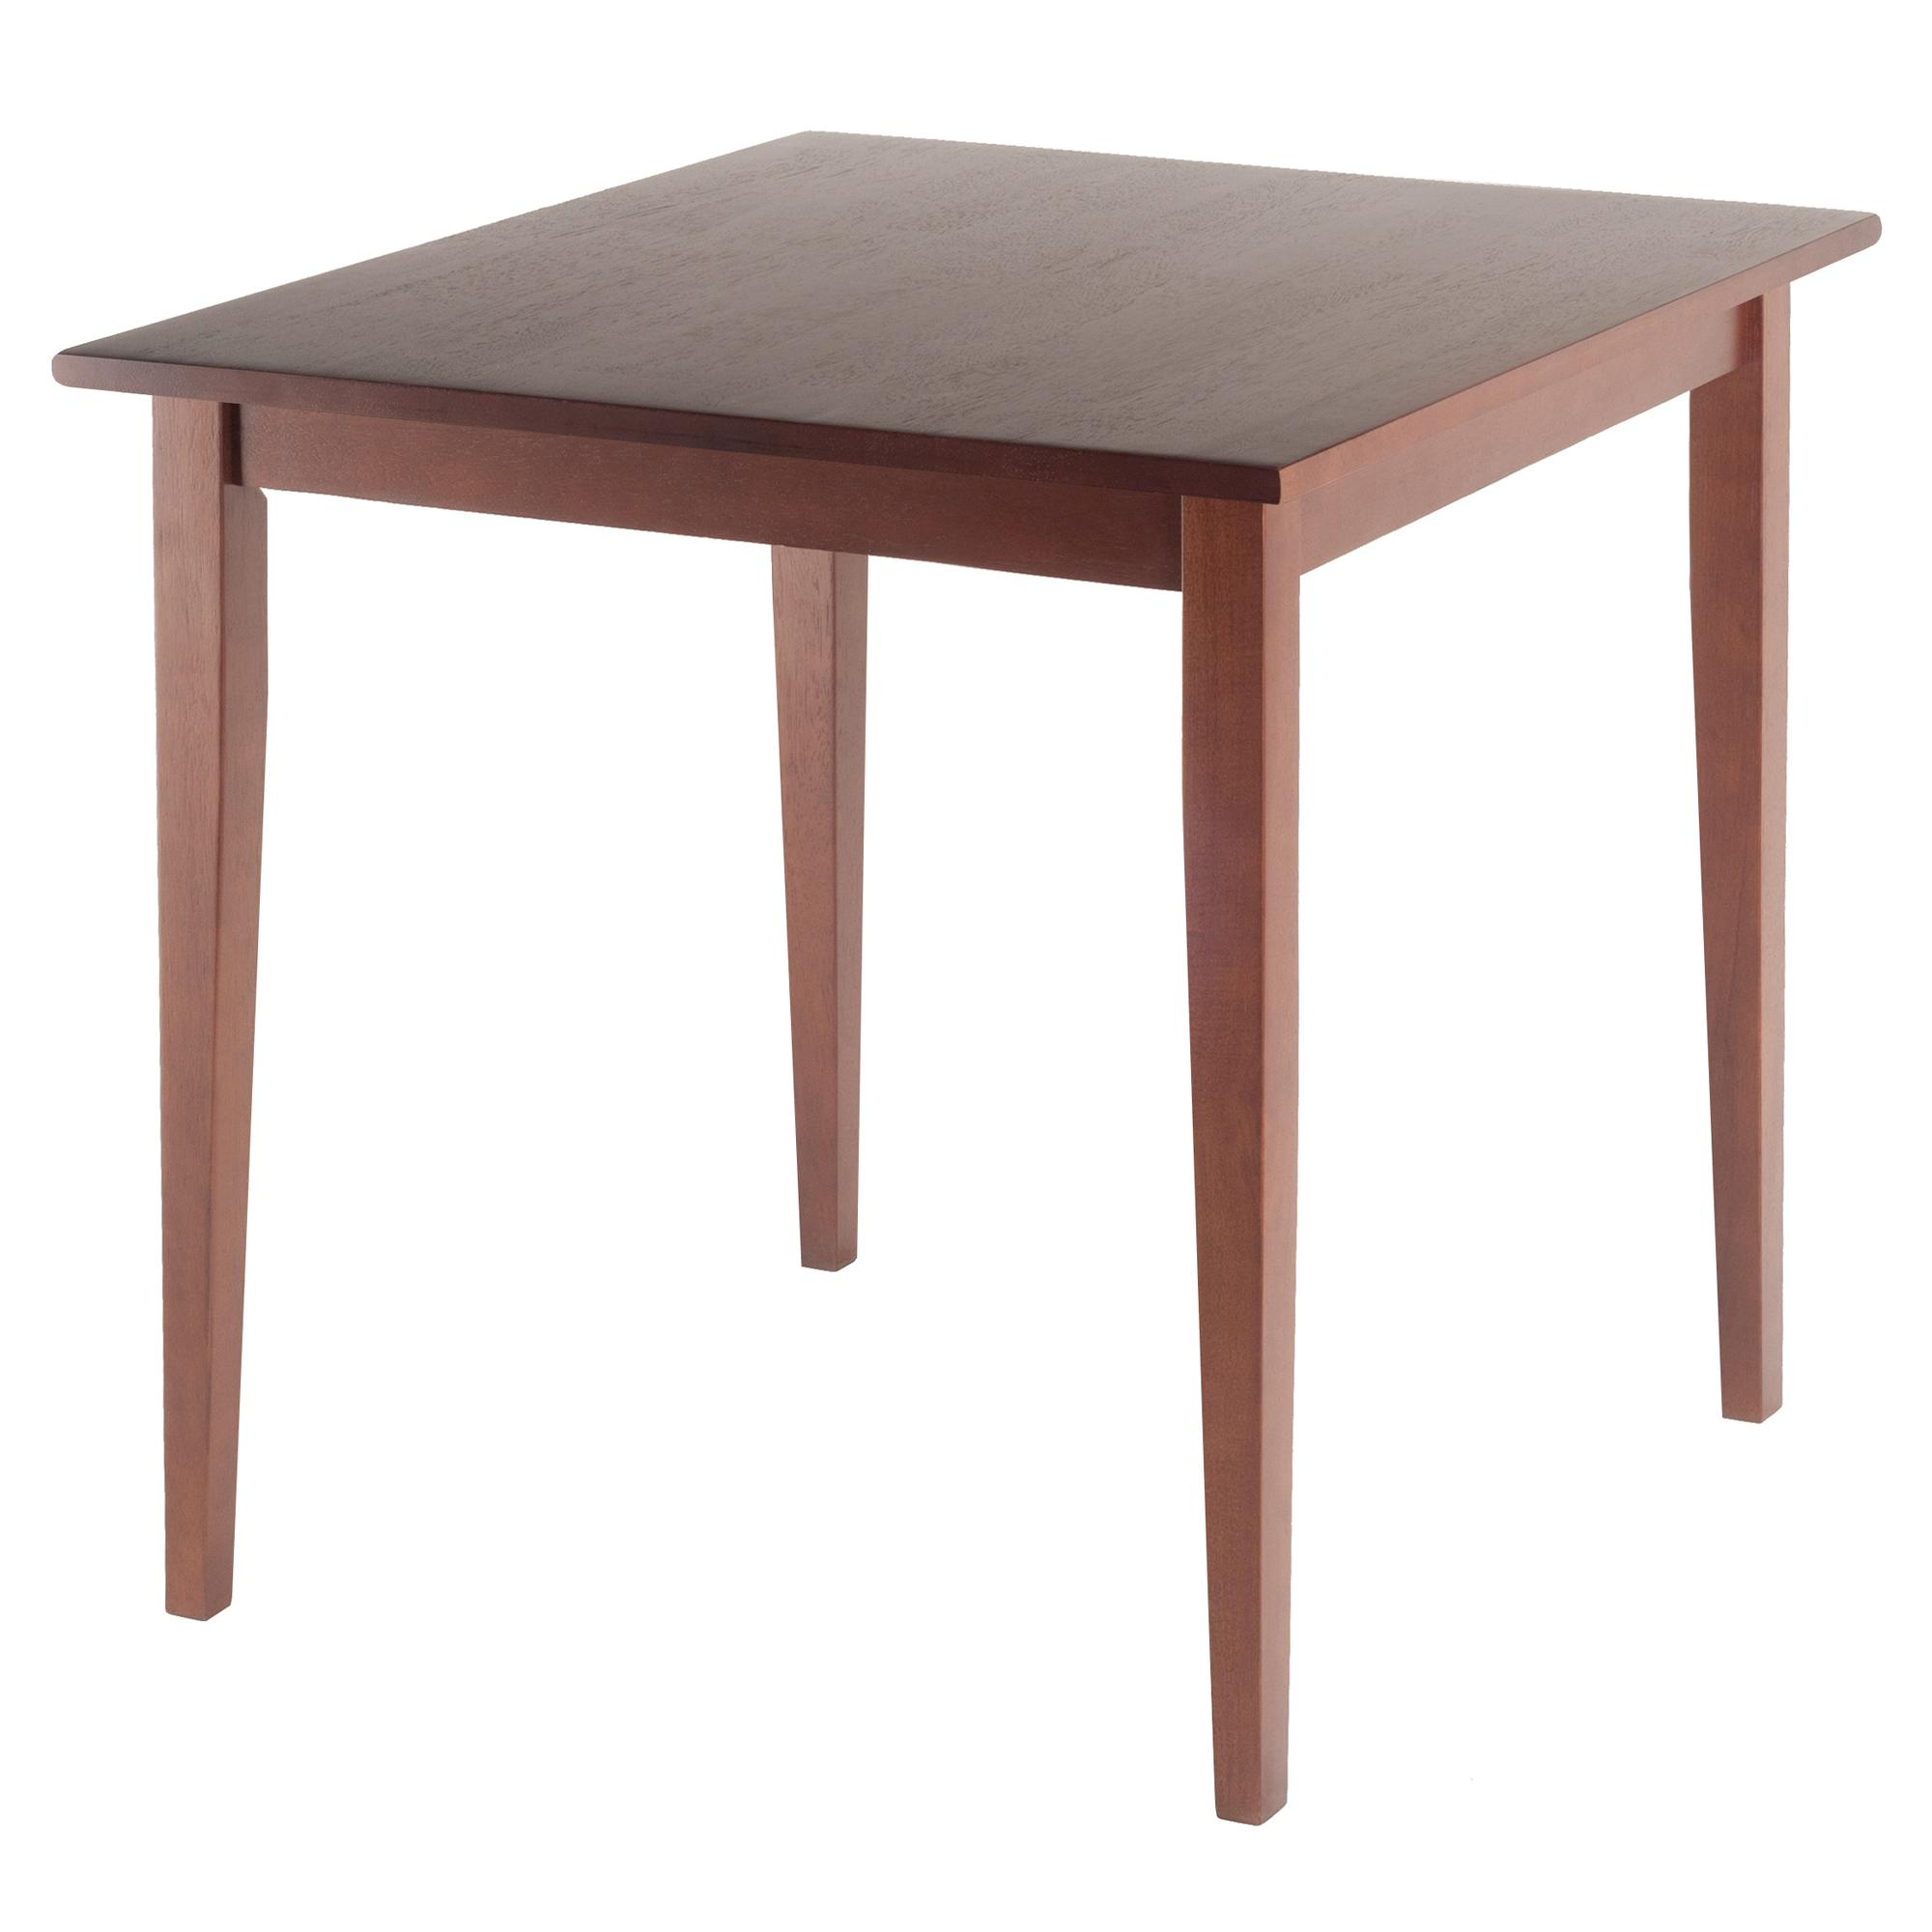 Winsome wood groveland square dining table in for Small 4 person dining table